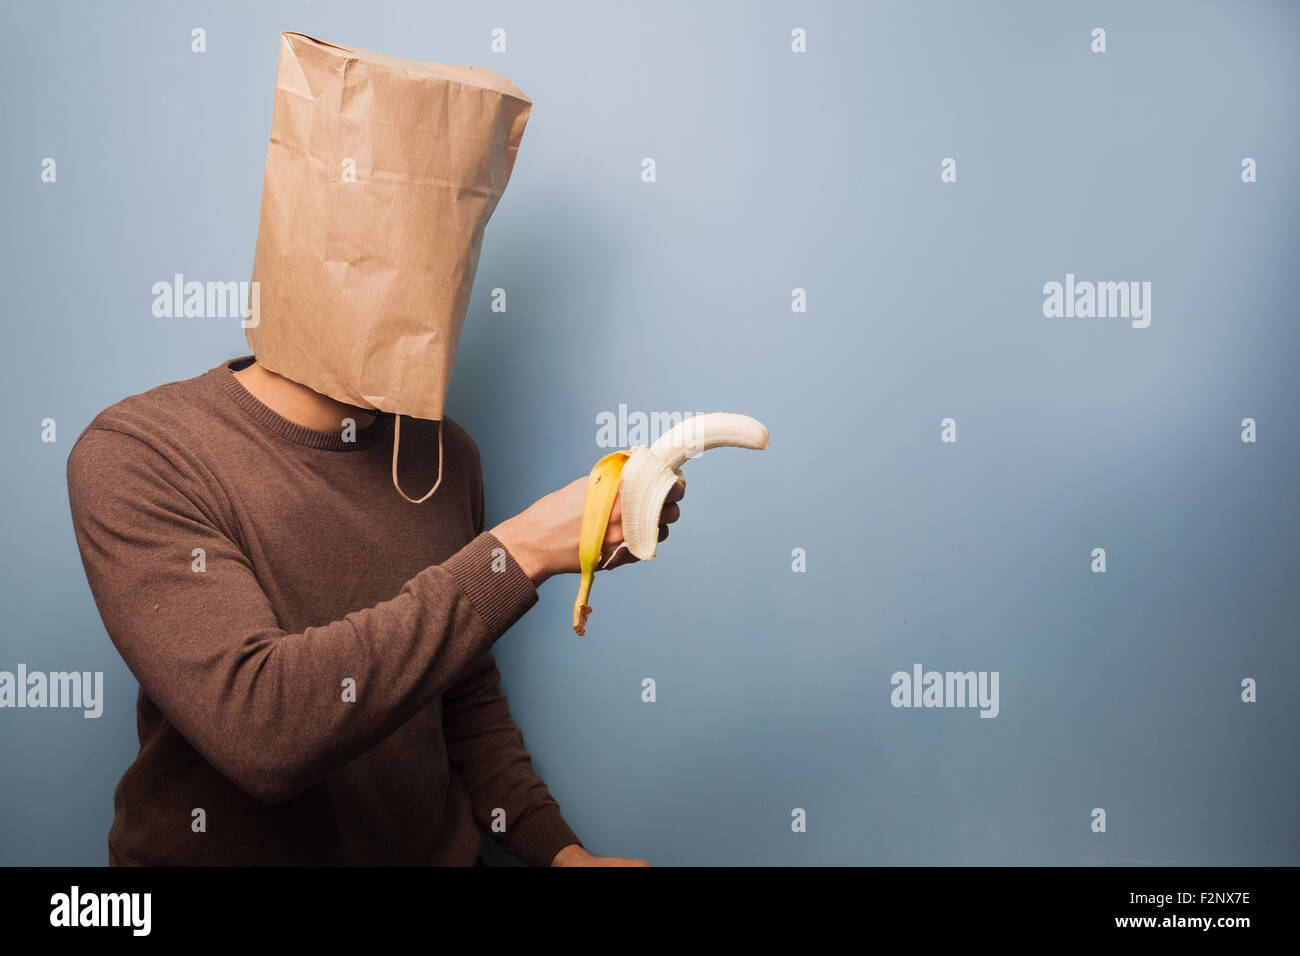 a young man with a paper bag on his head is pointing a banana as if it were a gun! - Stock Image